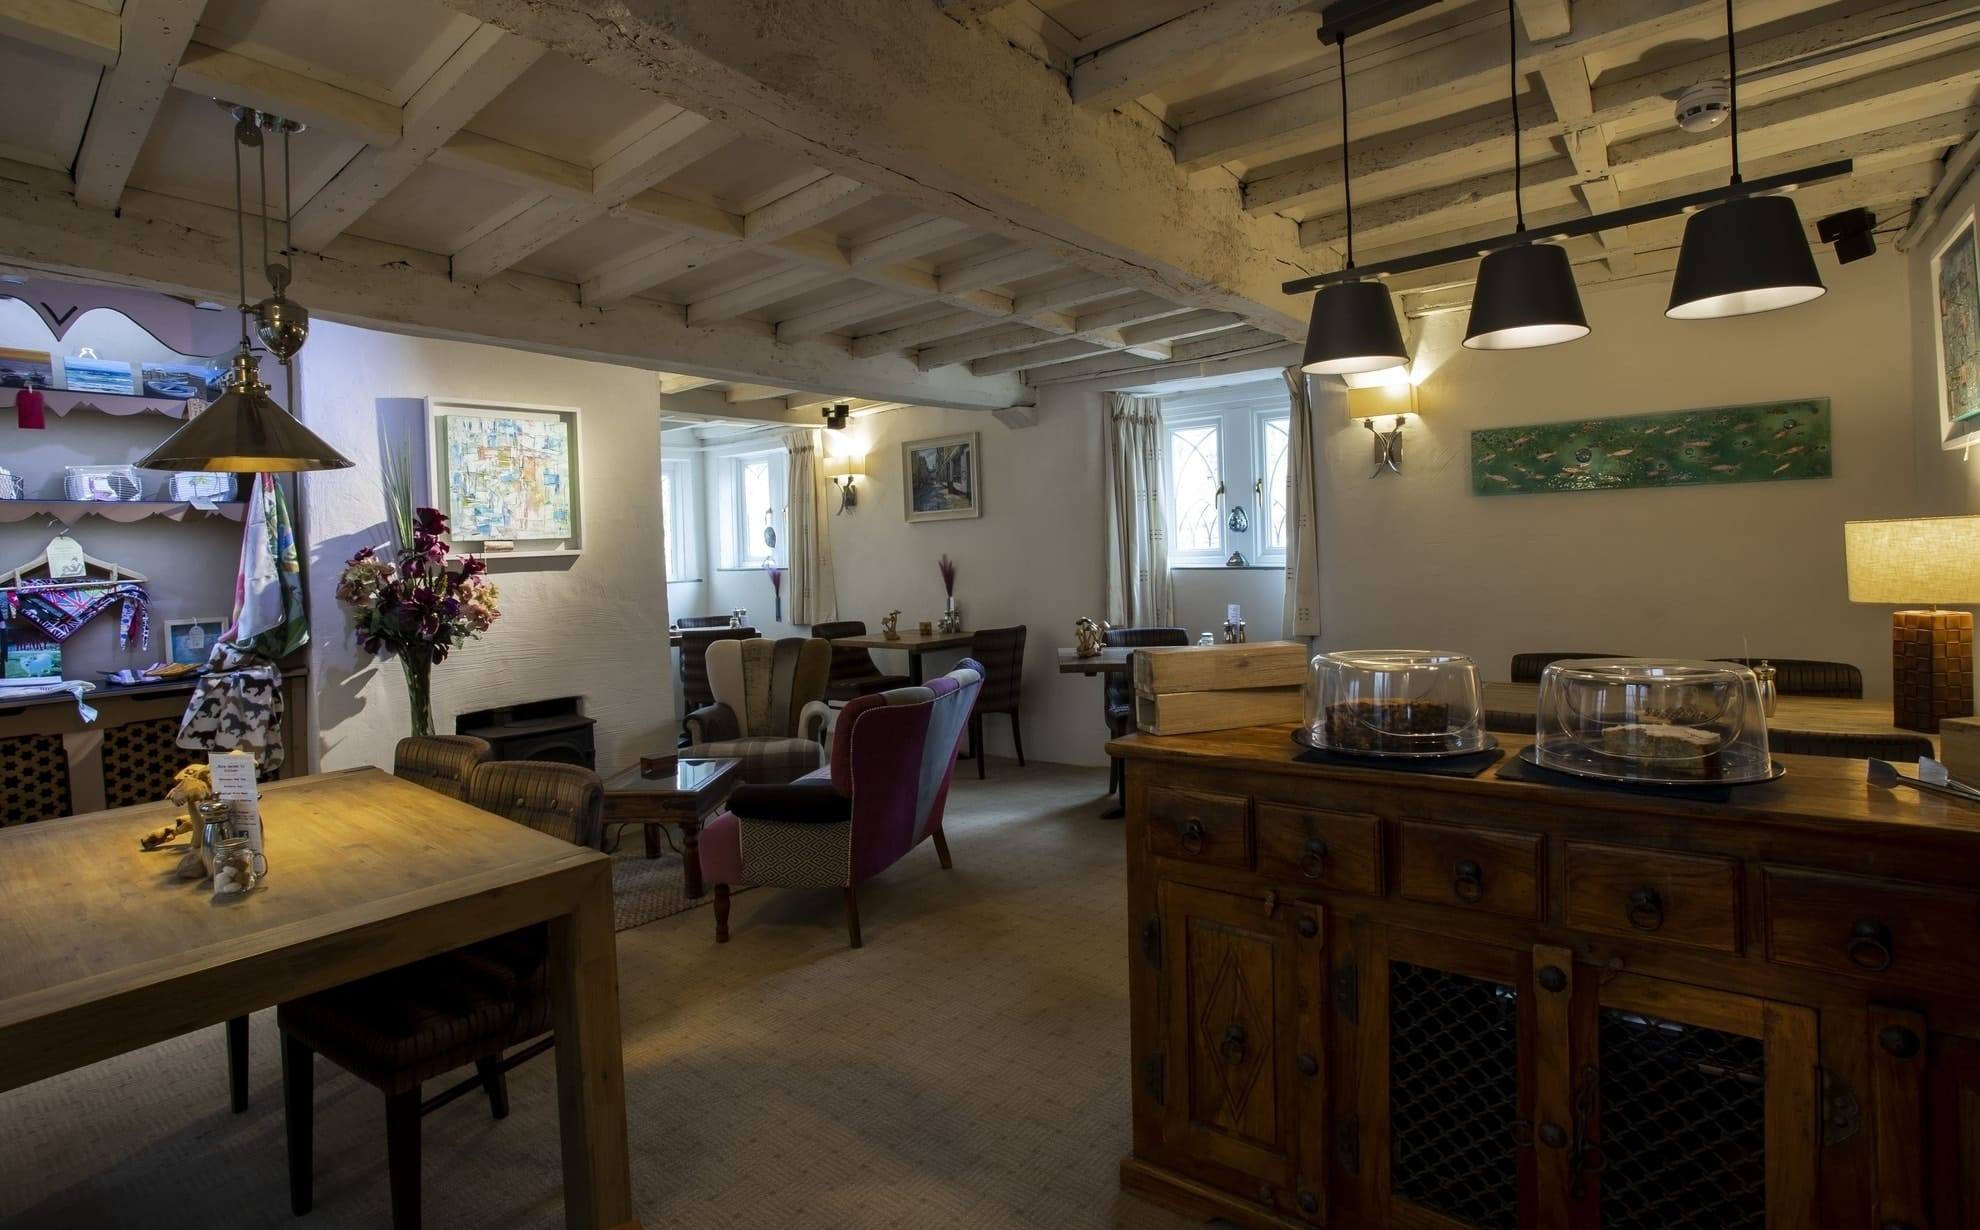 The Salty Monk Bed and Breakfast